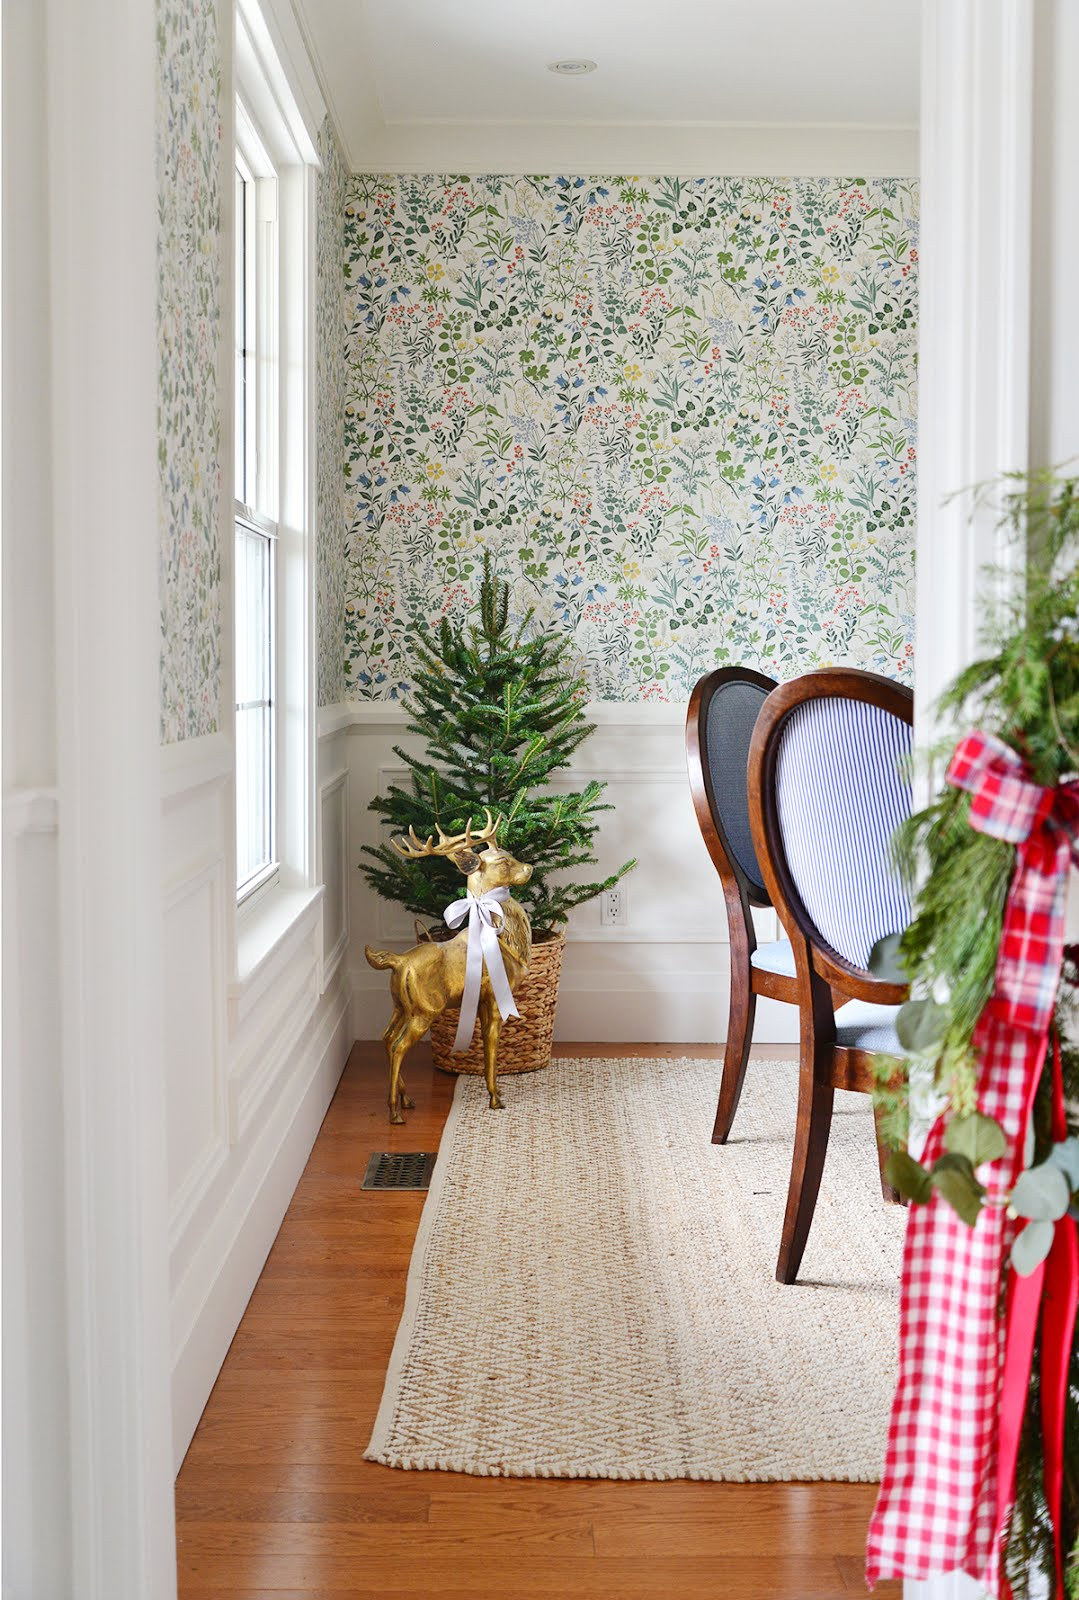 floral wallpaper in dining room, small christmas tree in basket, brass dear